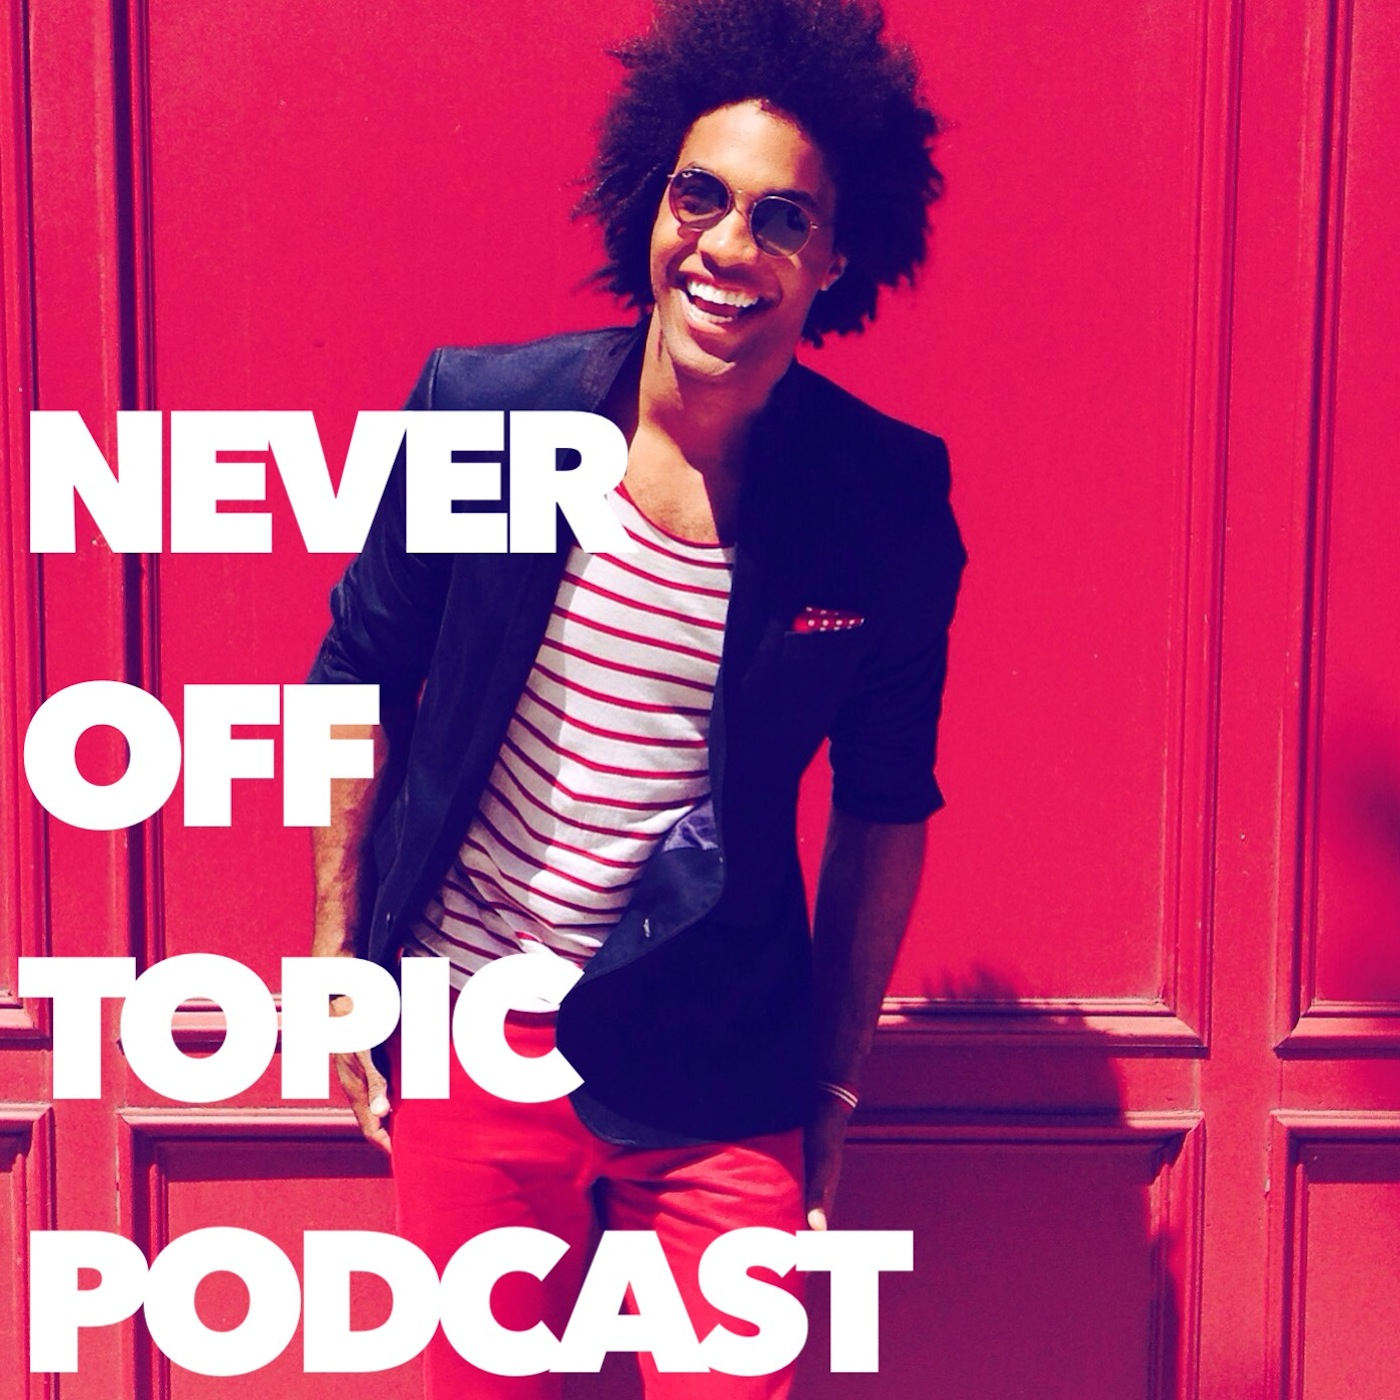 Never Off Topic Podcast - Oren Williamson